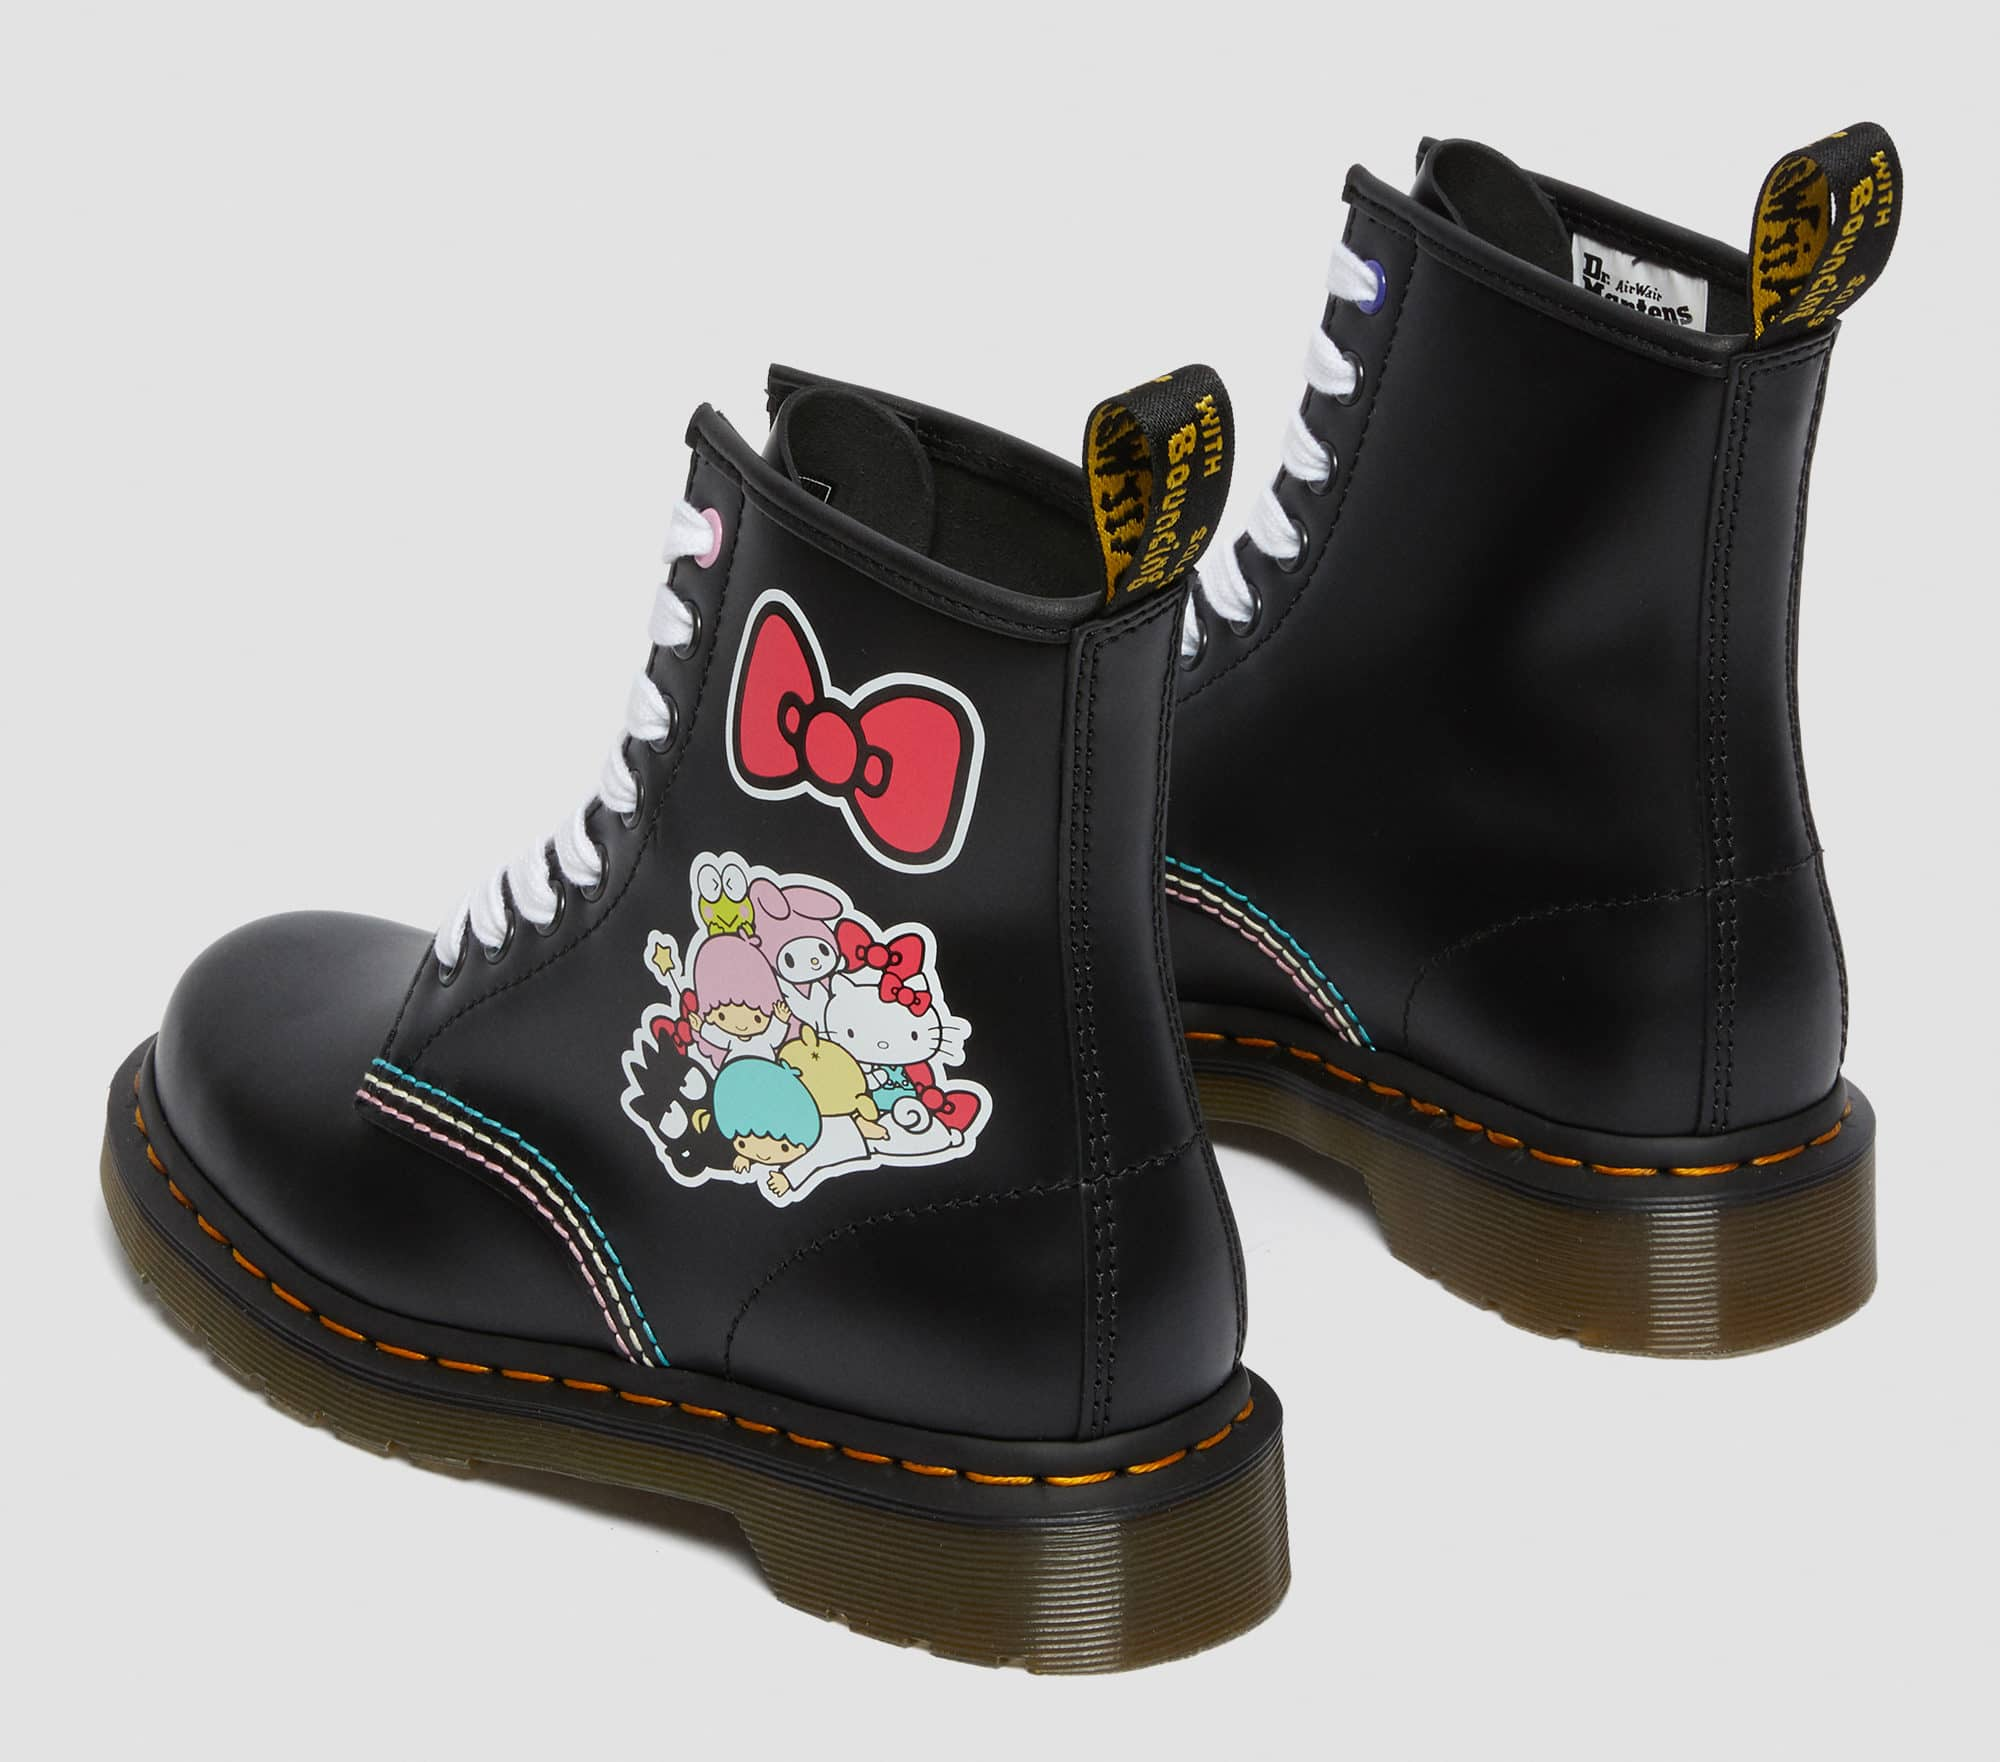 Dr. Martens boots get a cute makeover from Hello Kitty and Friends 10